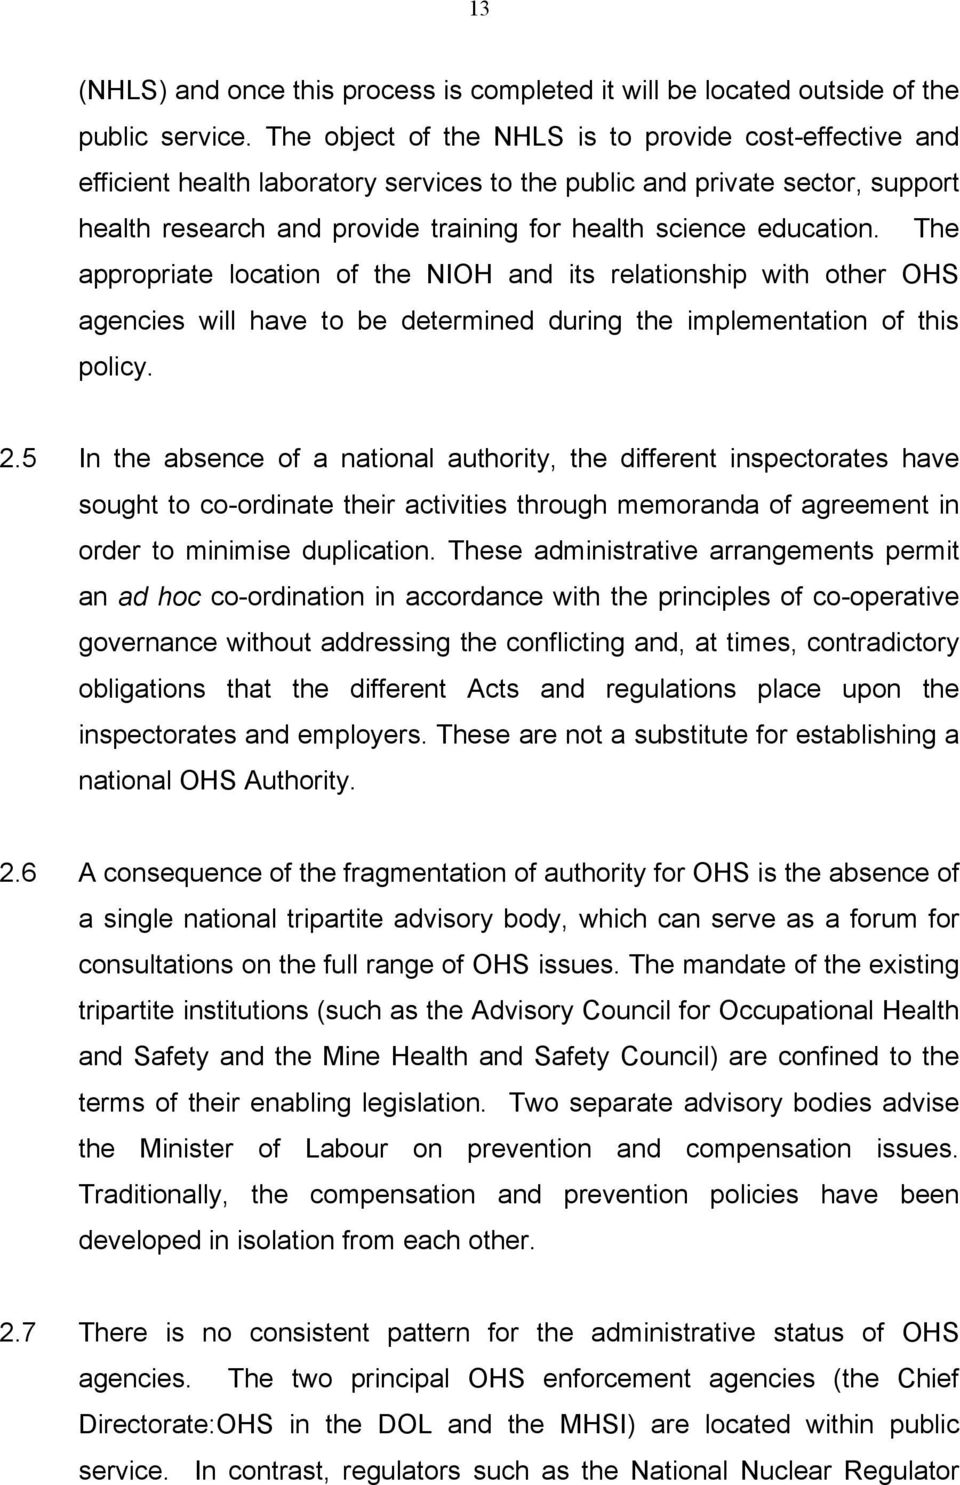 education. The appropriate location of the NIOH and its relationship with other OHS agencies will have to be determined during the implementation of this policy. 2.